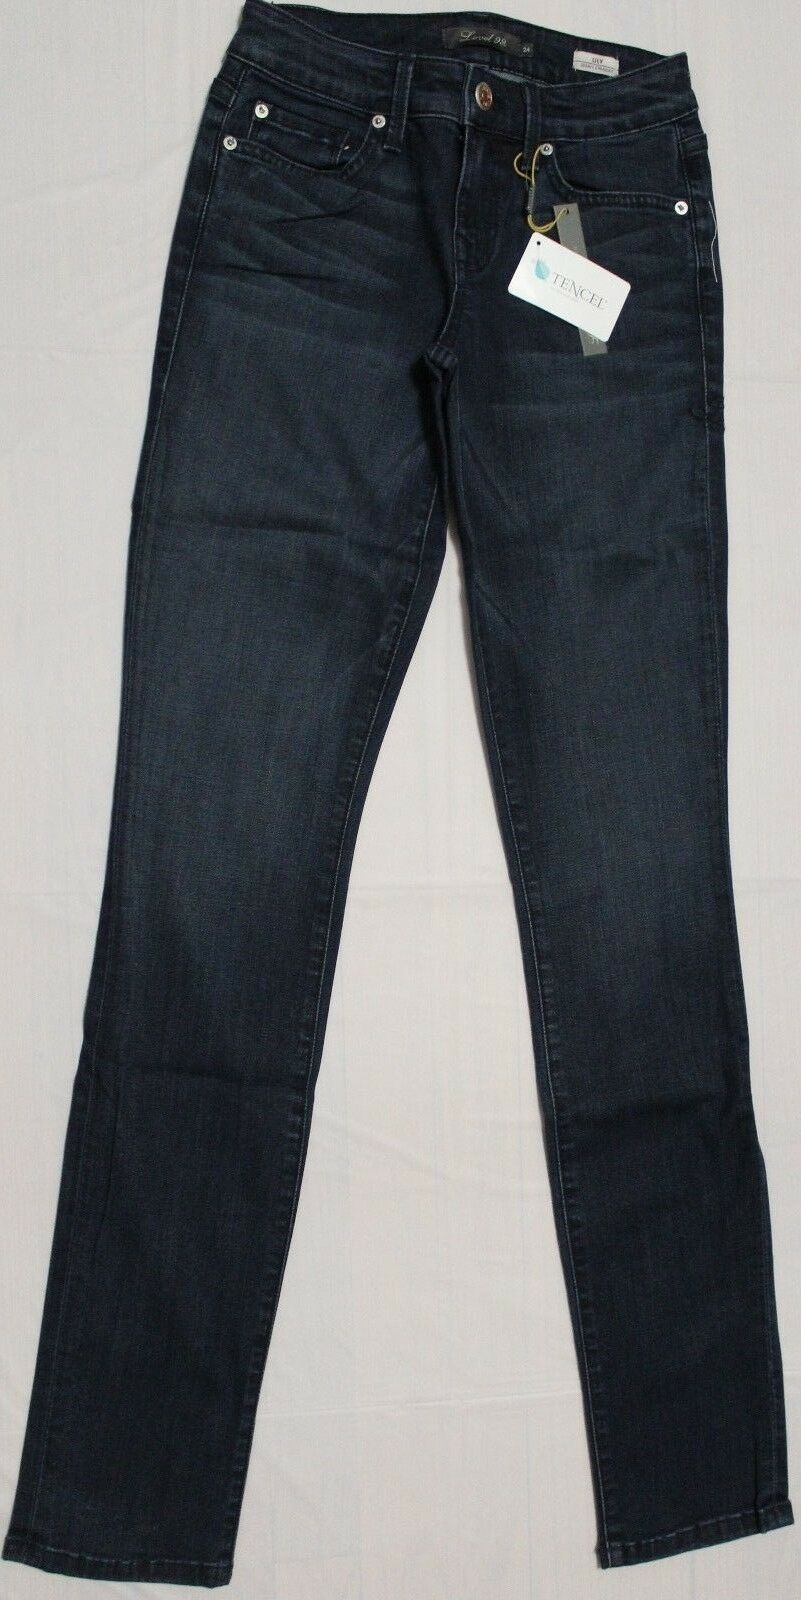 120 LEVEL 99 LILY OCEAN SKINNY STRAIGHT JEANS US 24